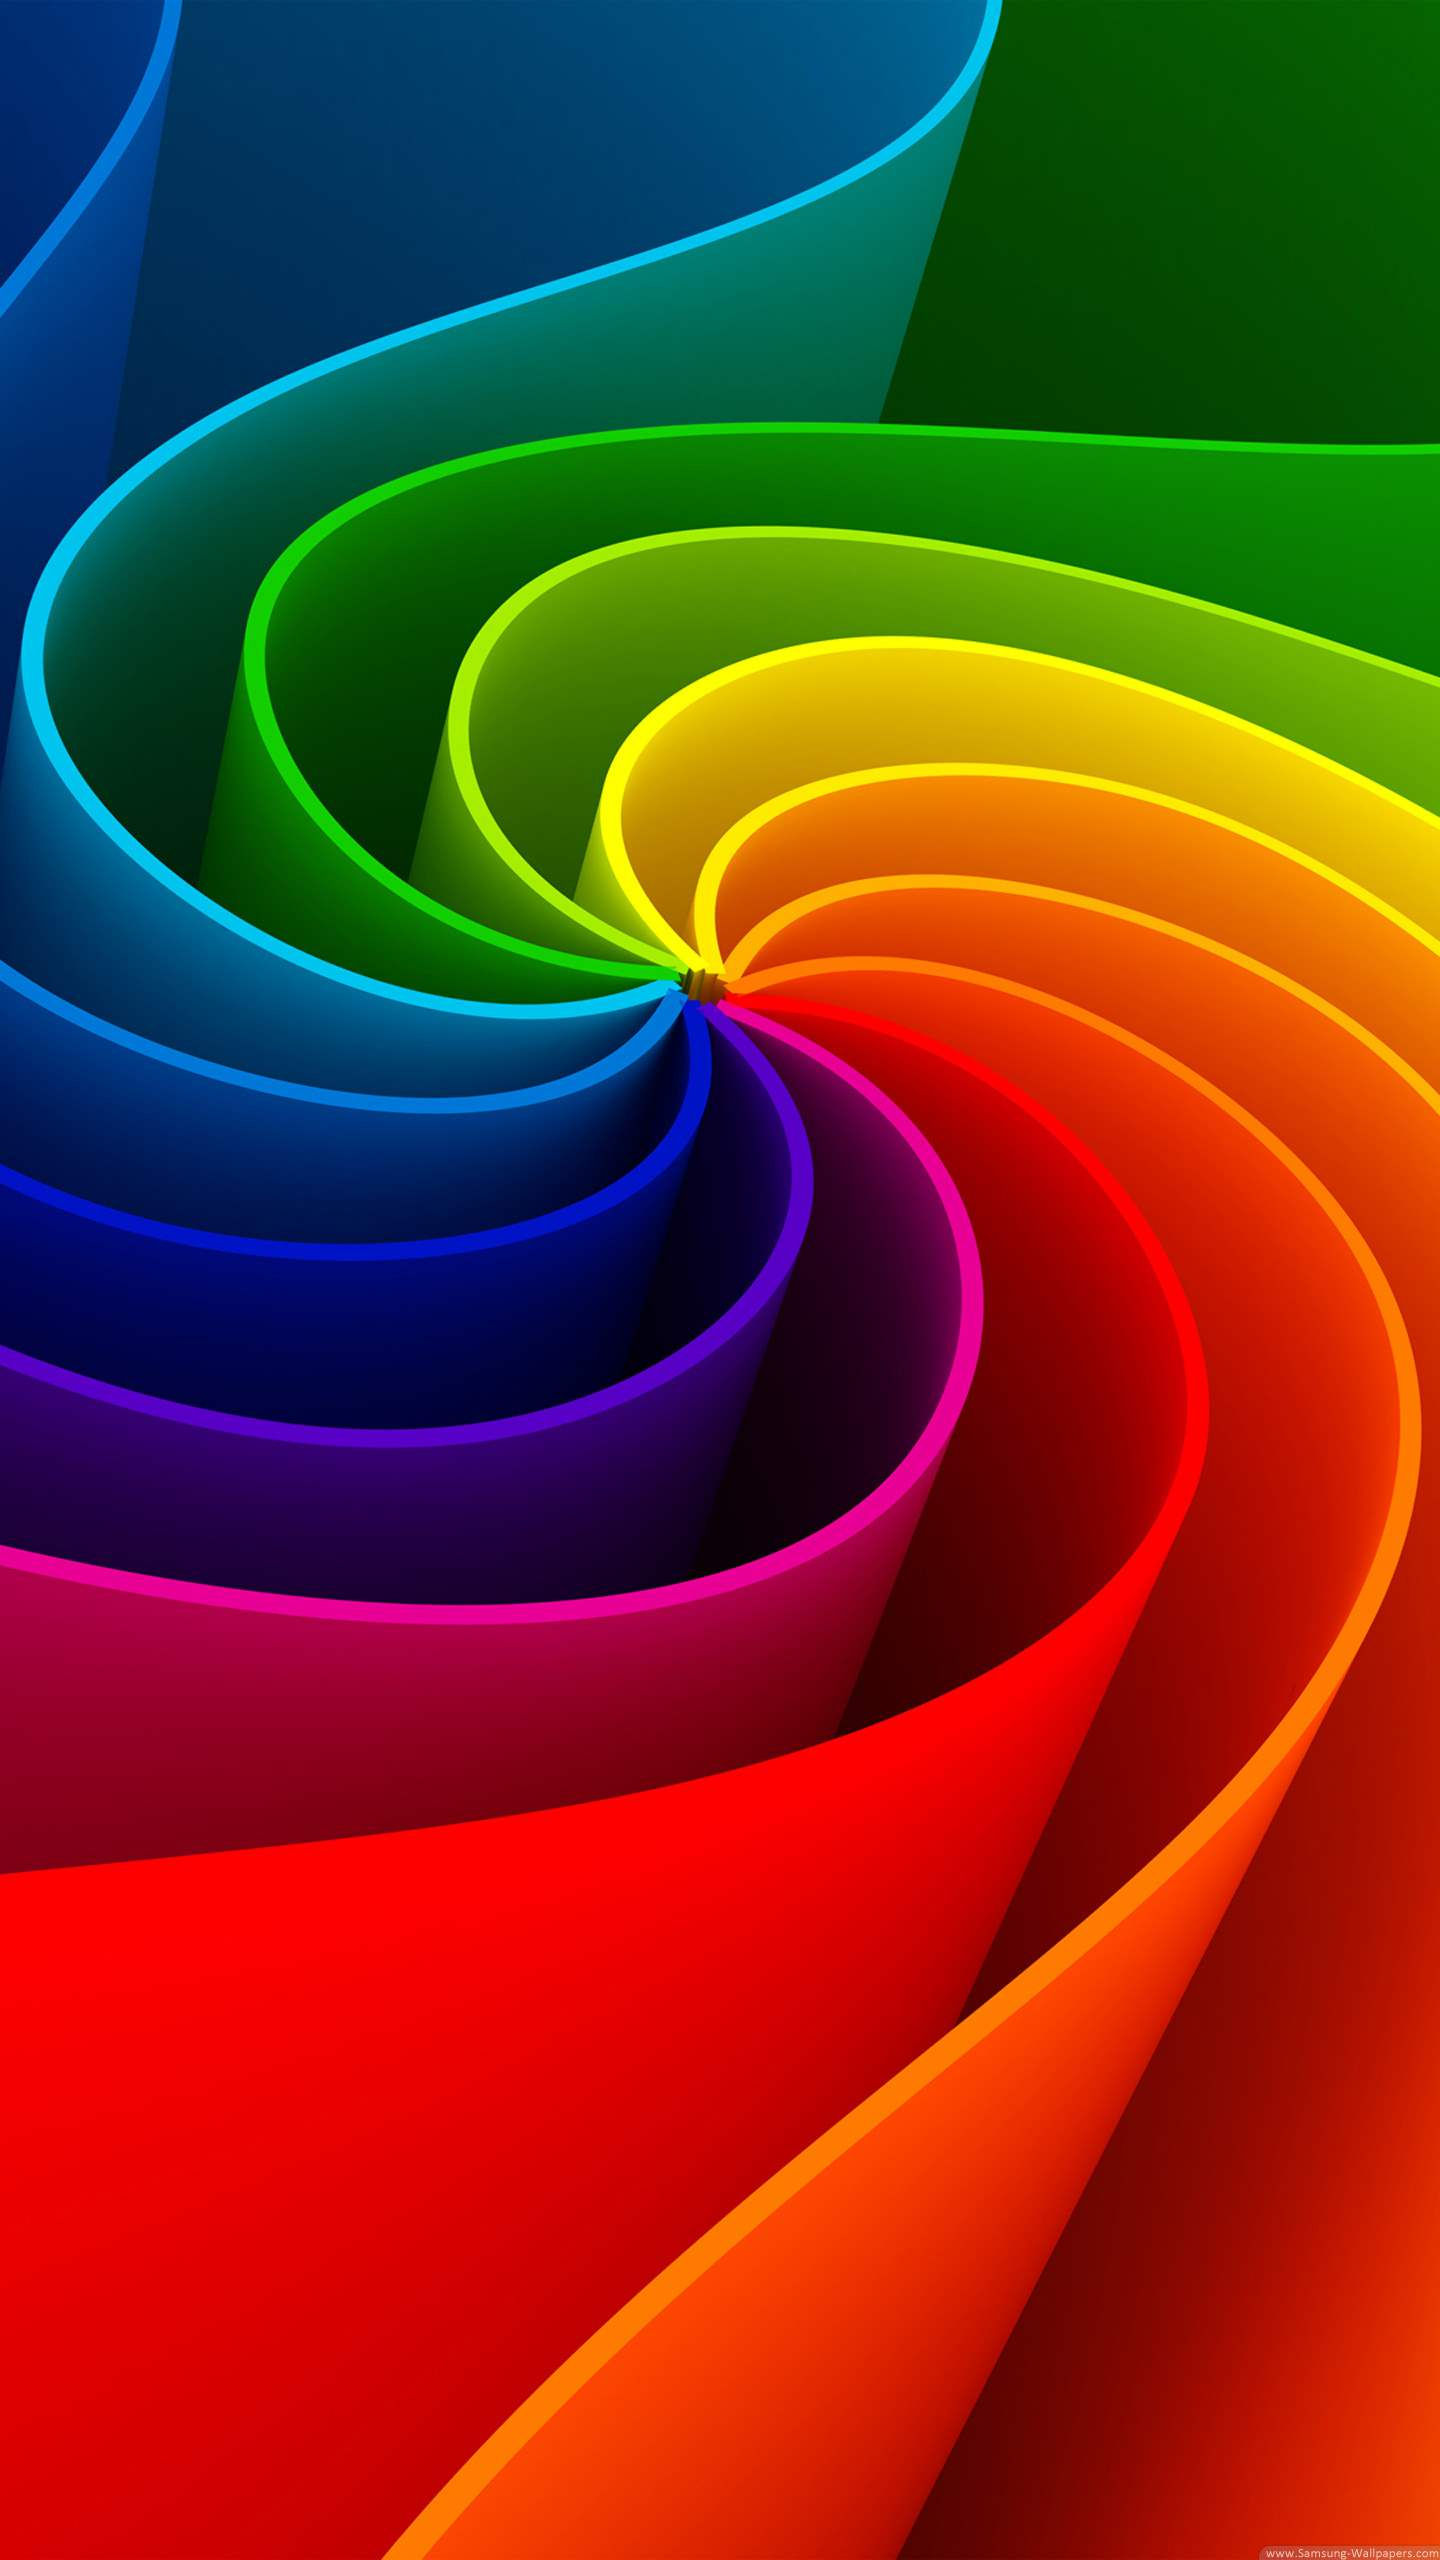 samsung-galaxy-s6-plus-note-edge-wallpapers-designsmag-01